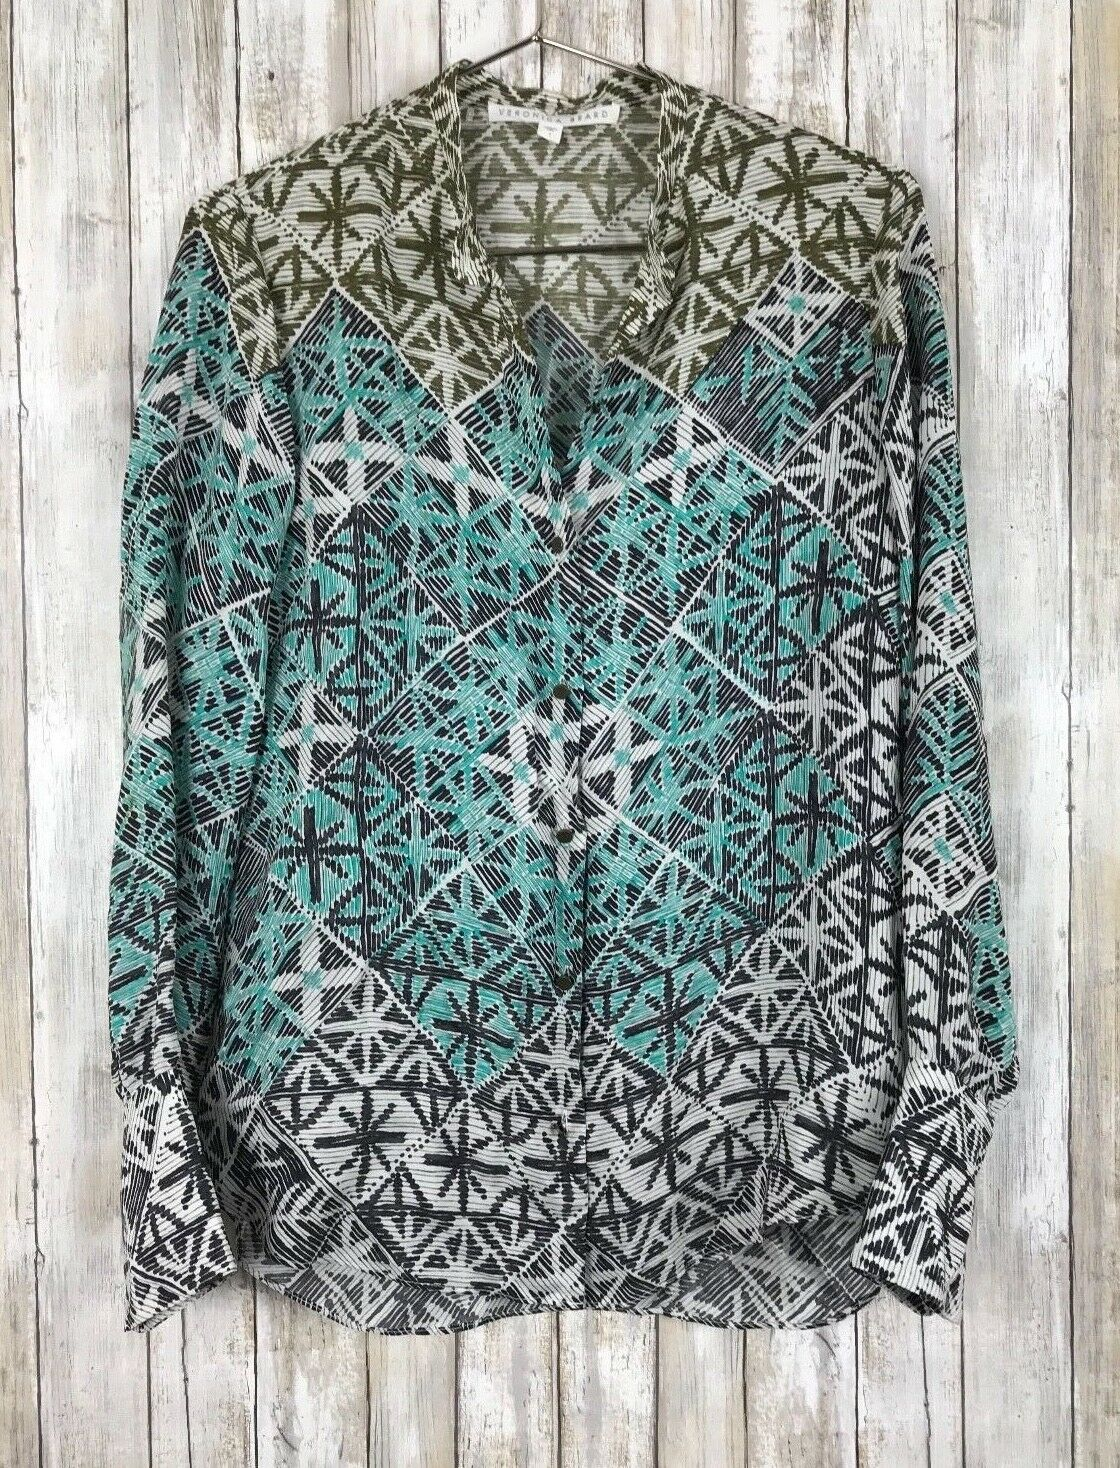 VERONICA BEARD Teal White Geo Print Silk Button Down Blouse Top 1 S Small RARE